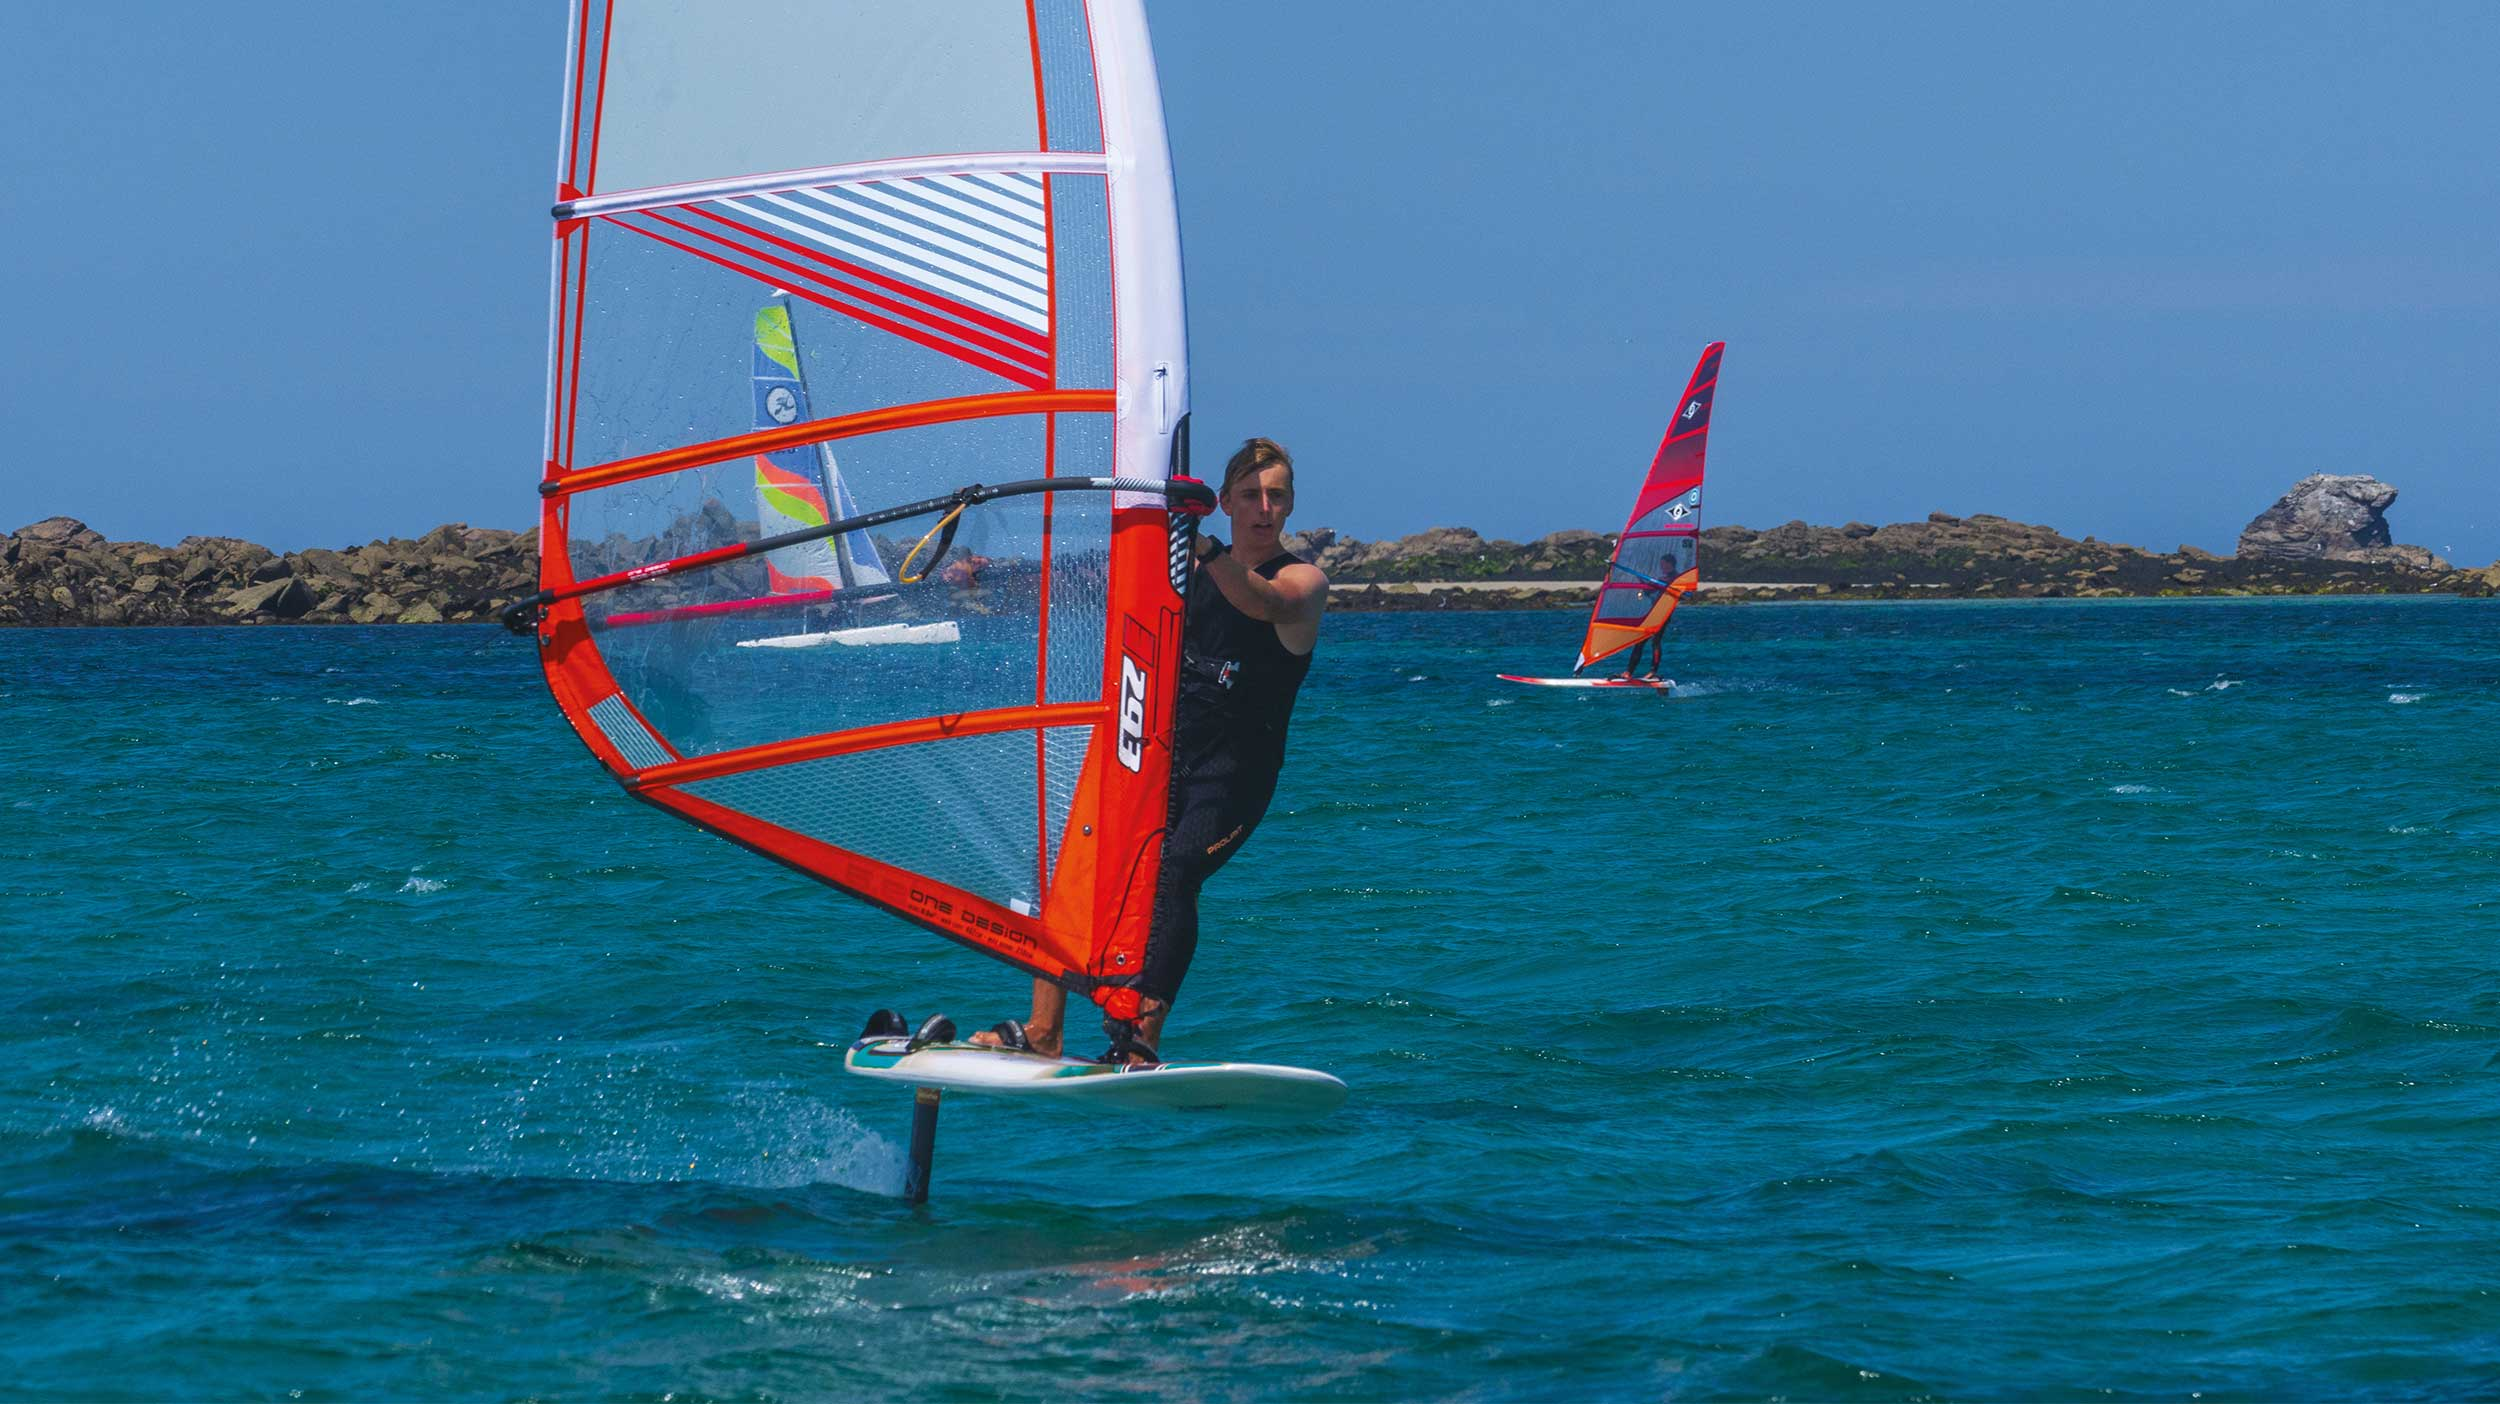 Windsurf freeride